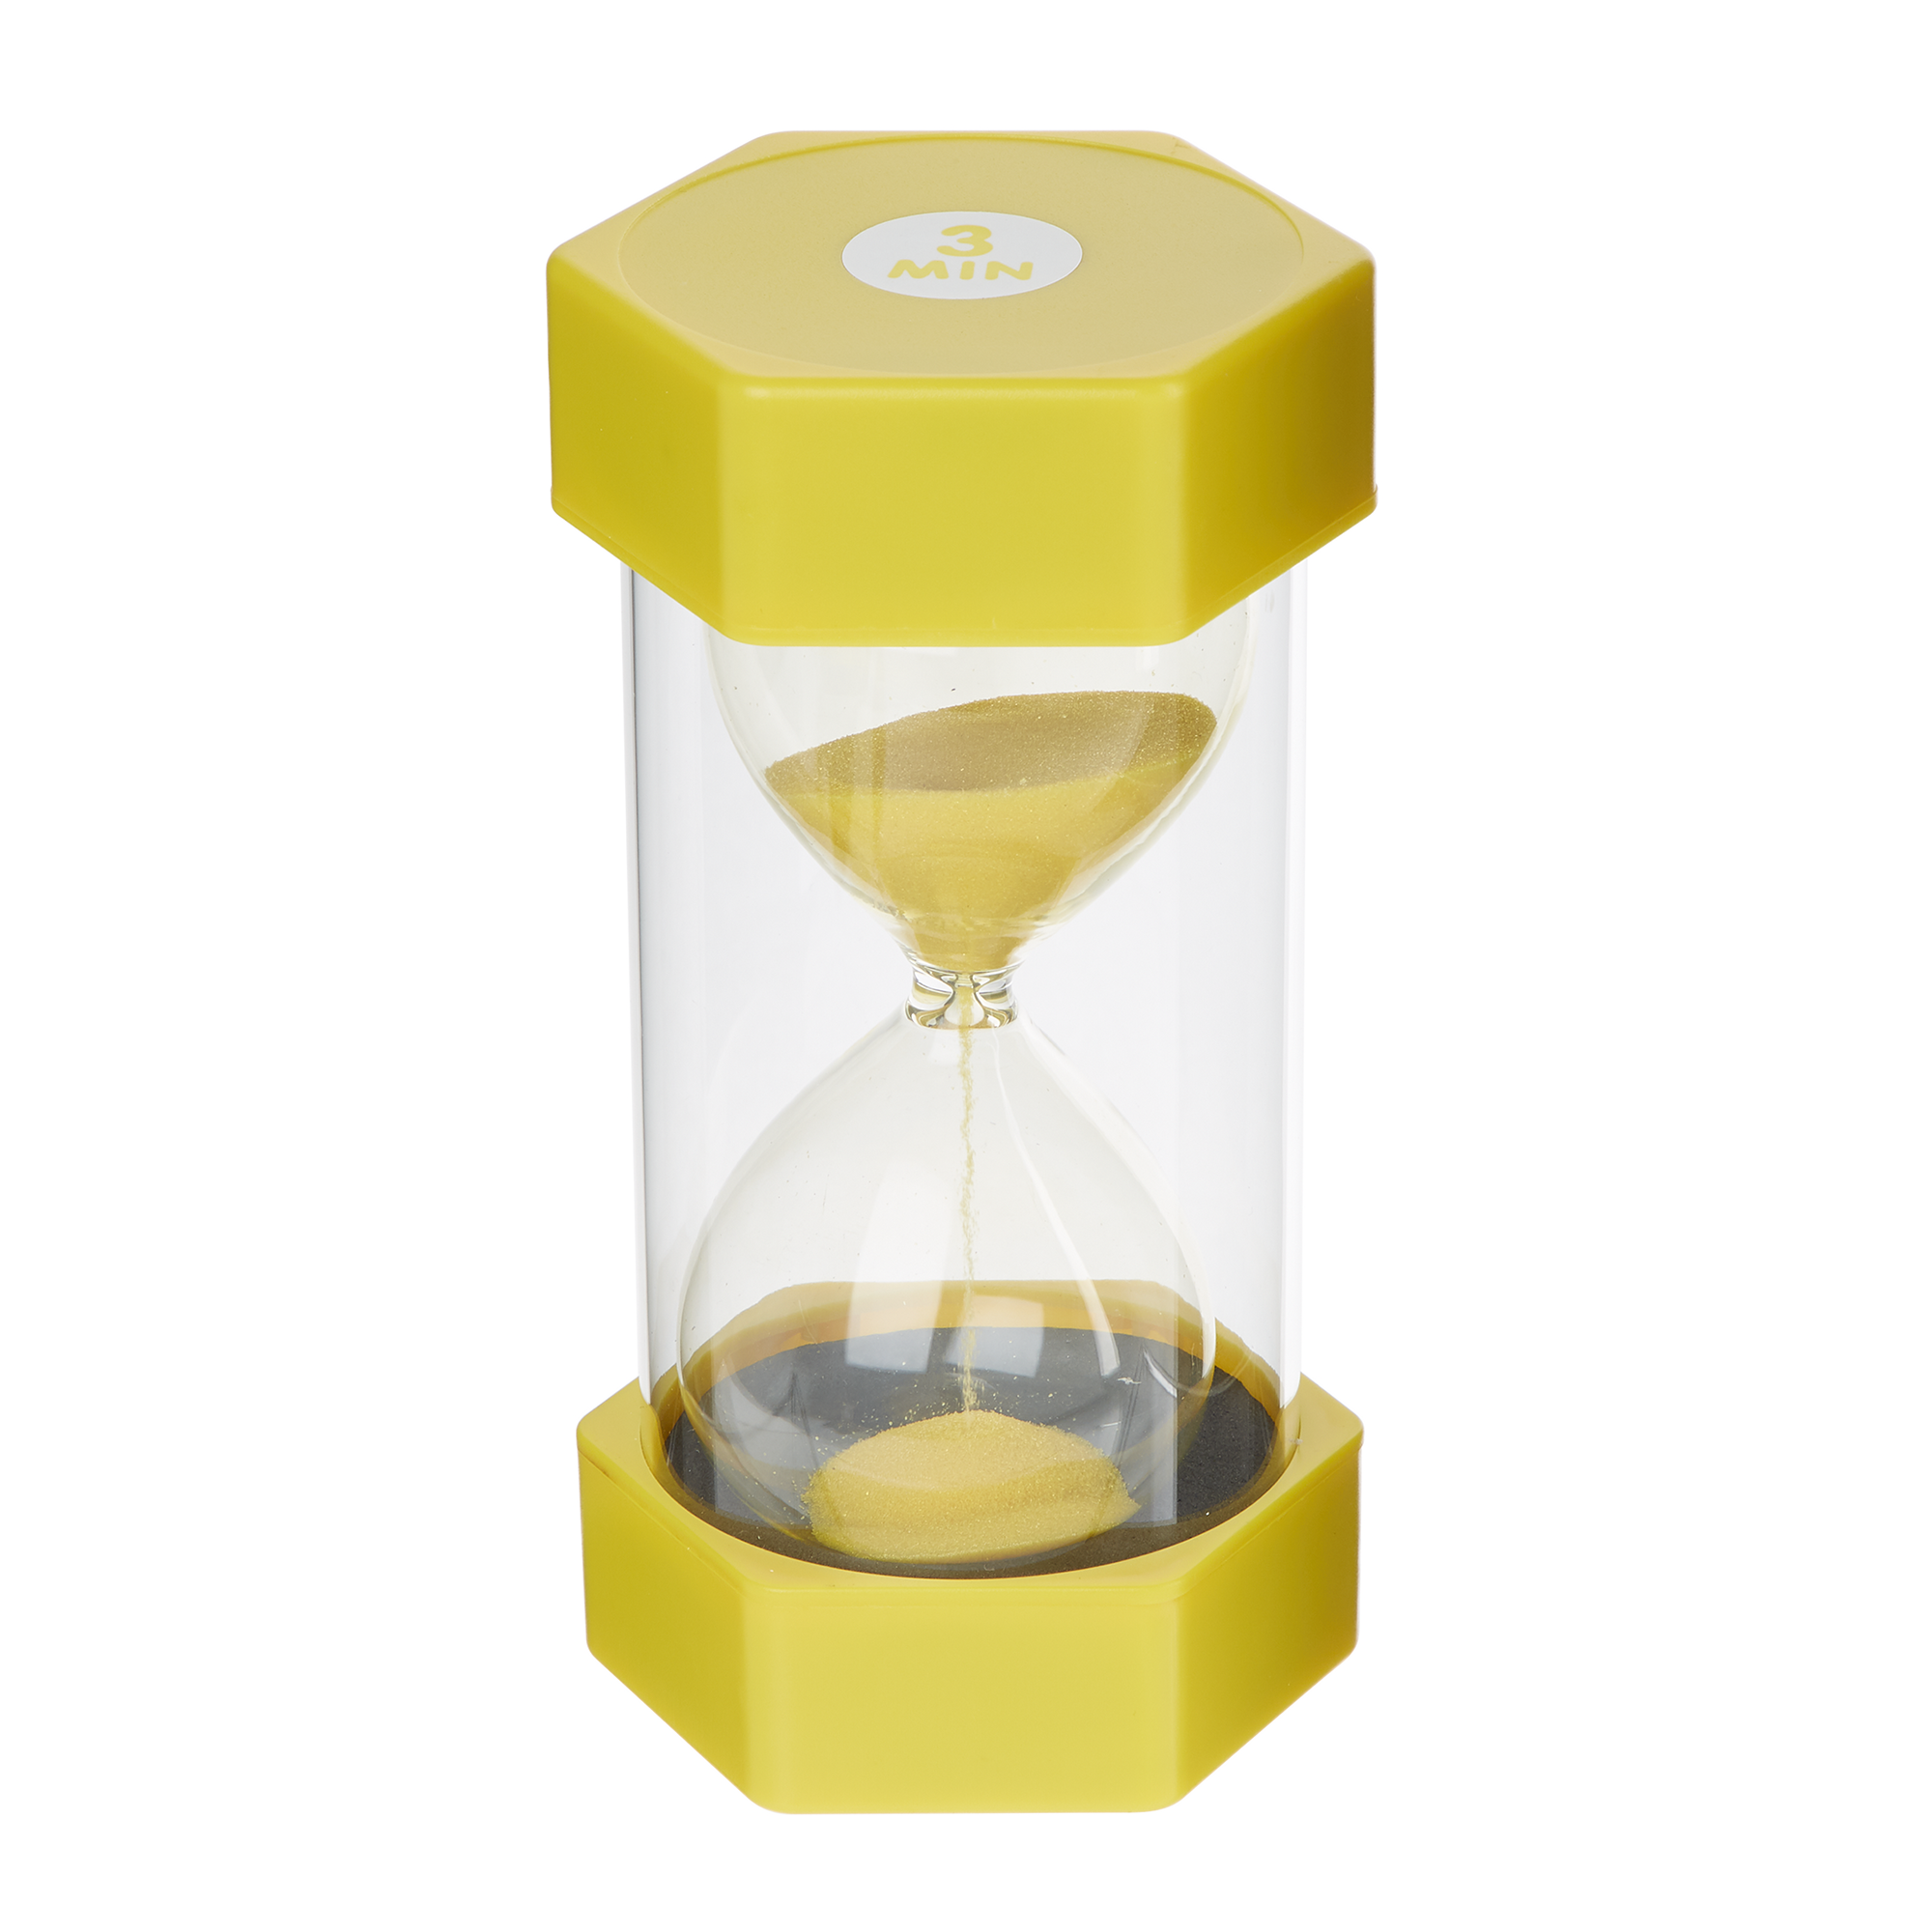 SEN School Set of 3 Mini Sand Timers 1,3,5 Minute Time Management